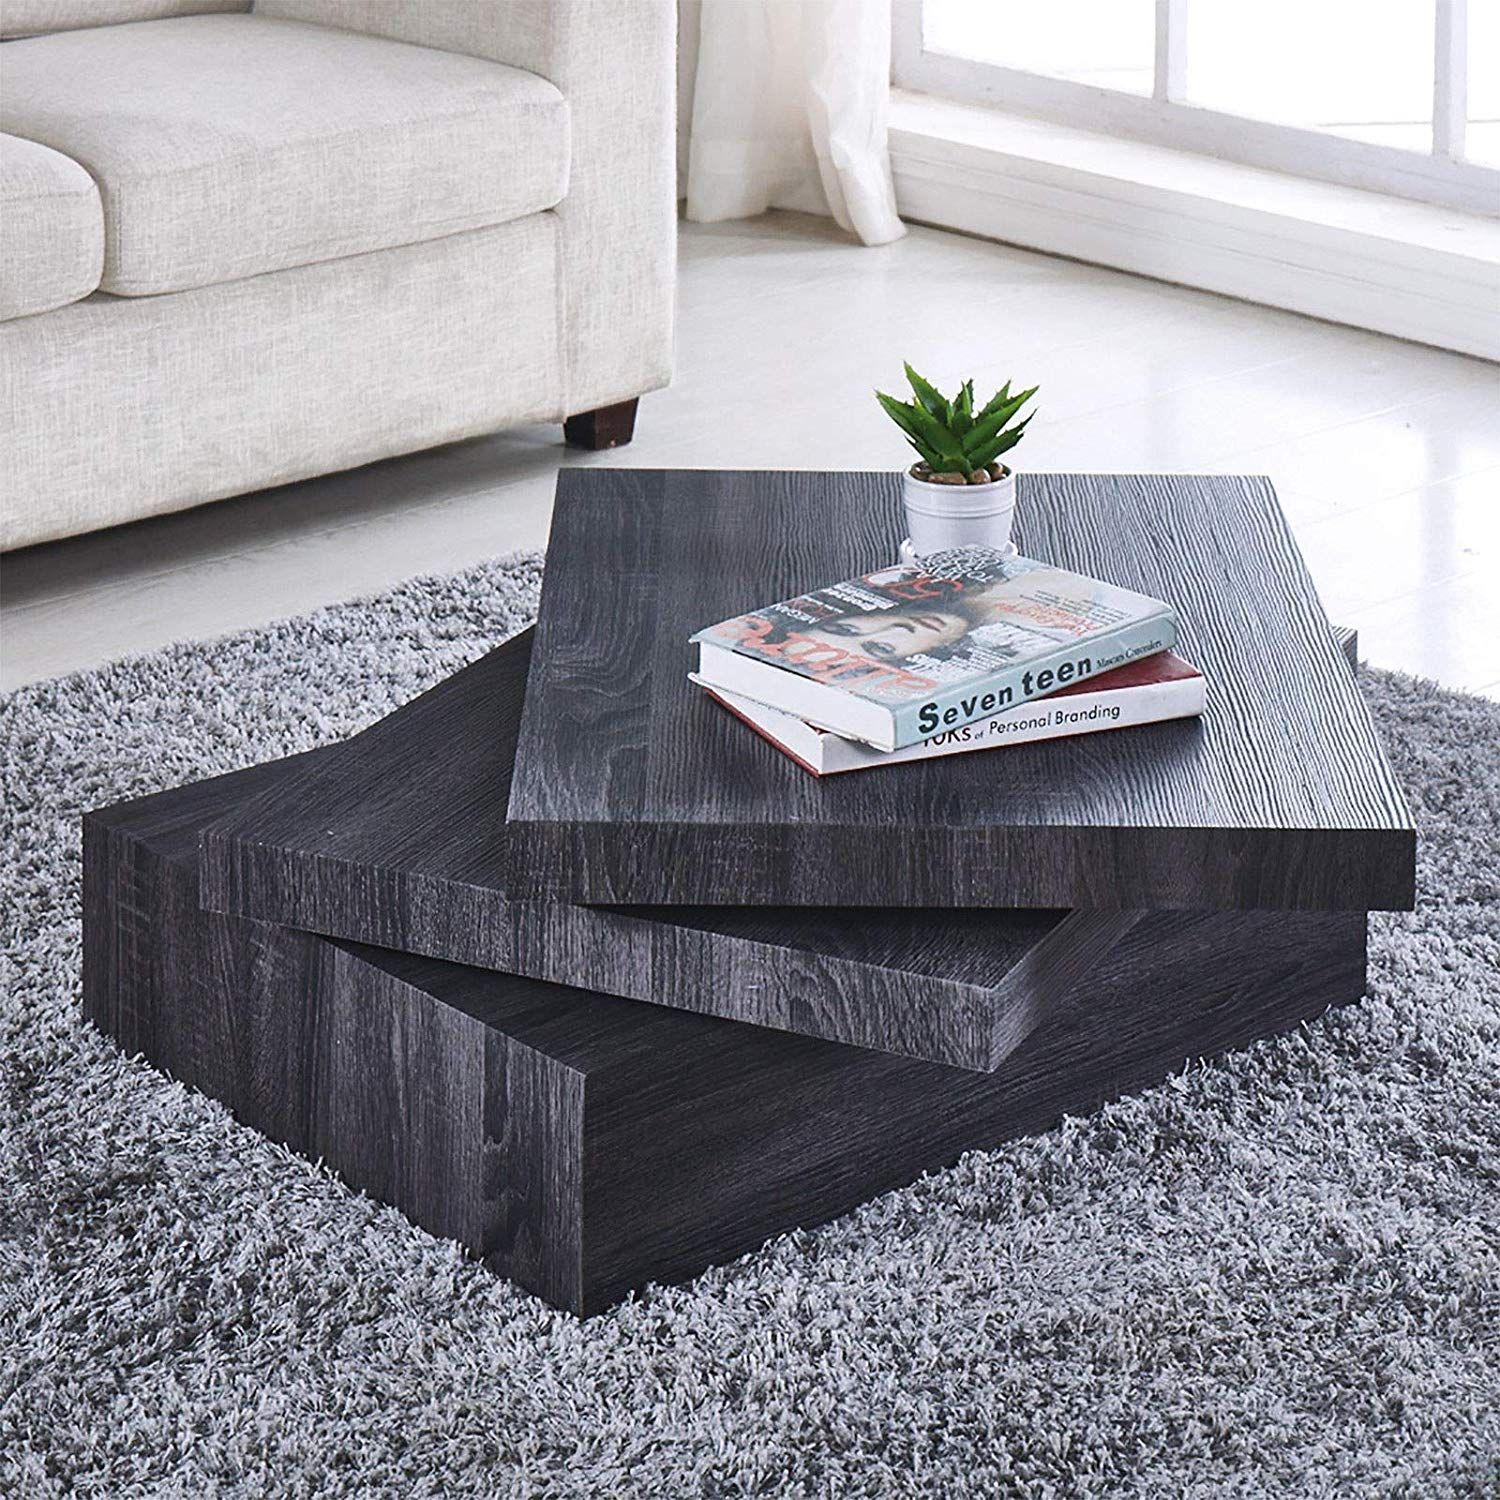 Best Direct Deals Black Coffee Table Coffee Table Living Room Modern Contemporary Modern Living Room Furniture Modern Contemporary Living Room [ 1500 x 1500 Pixel ]